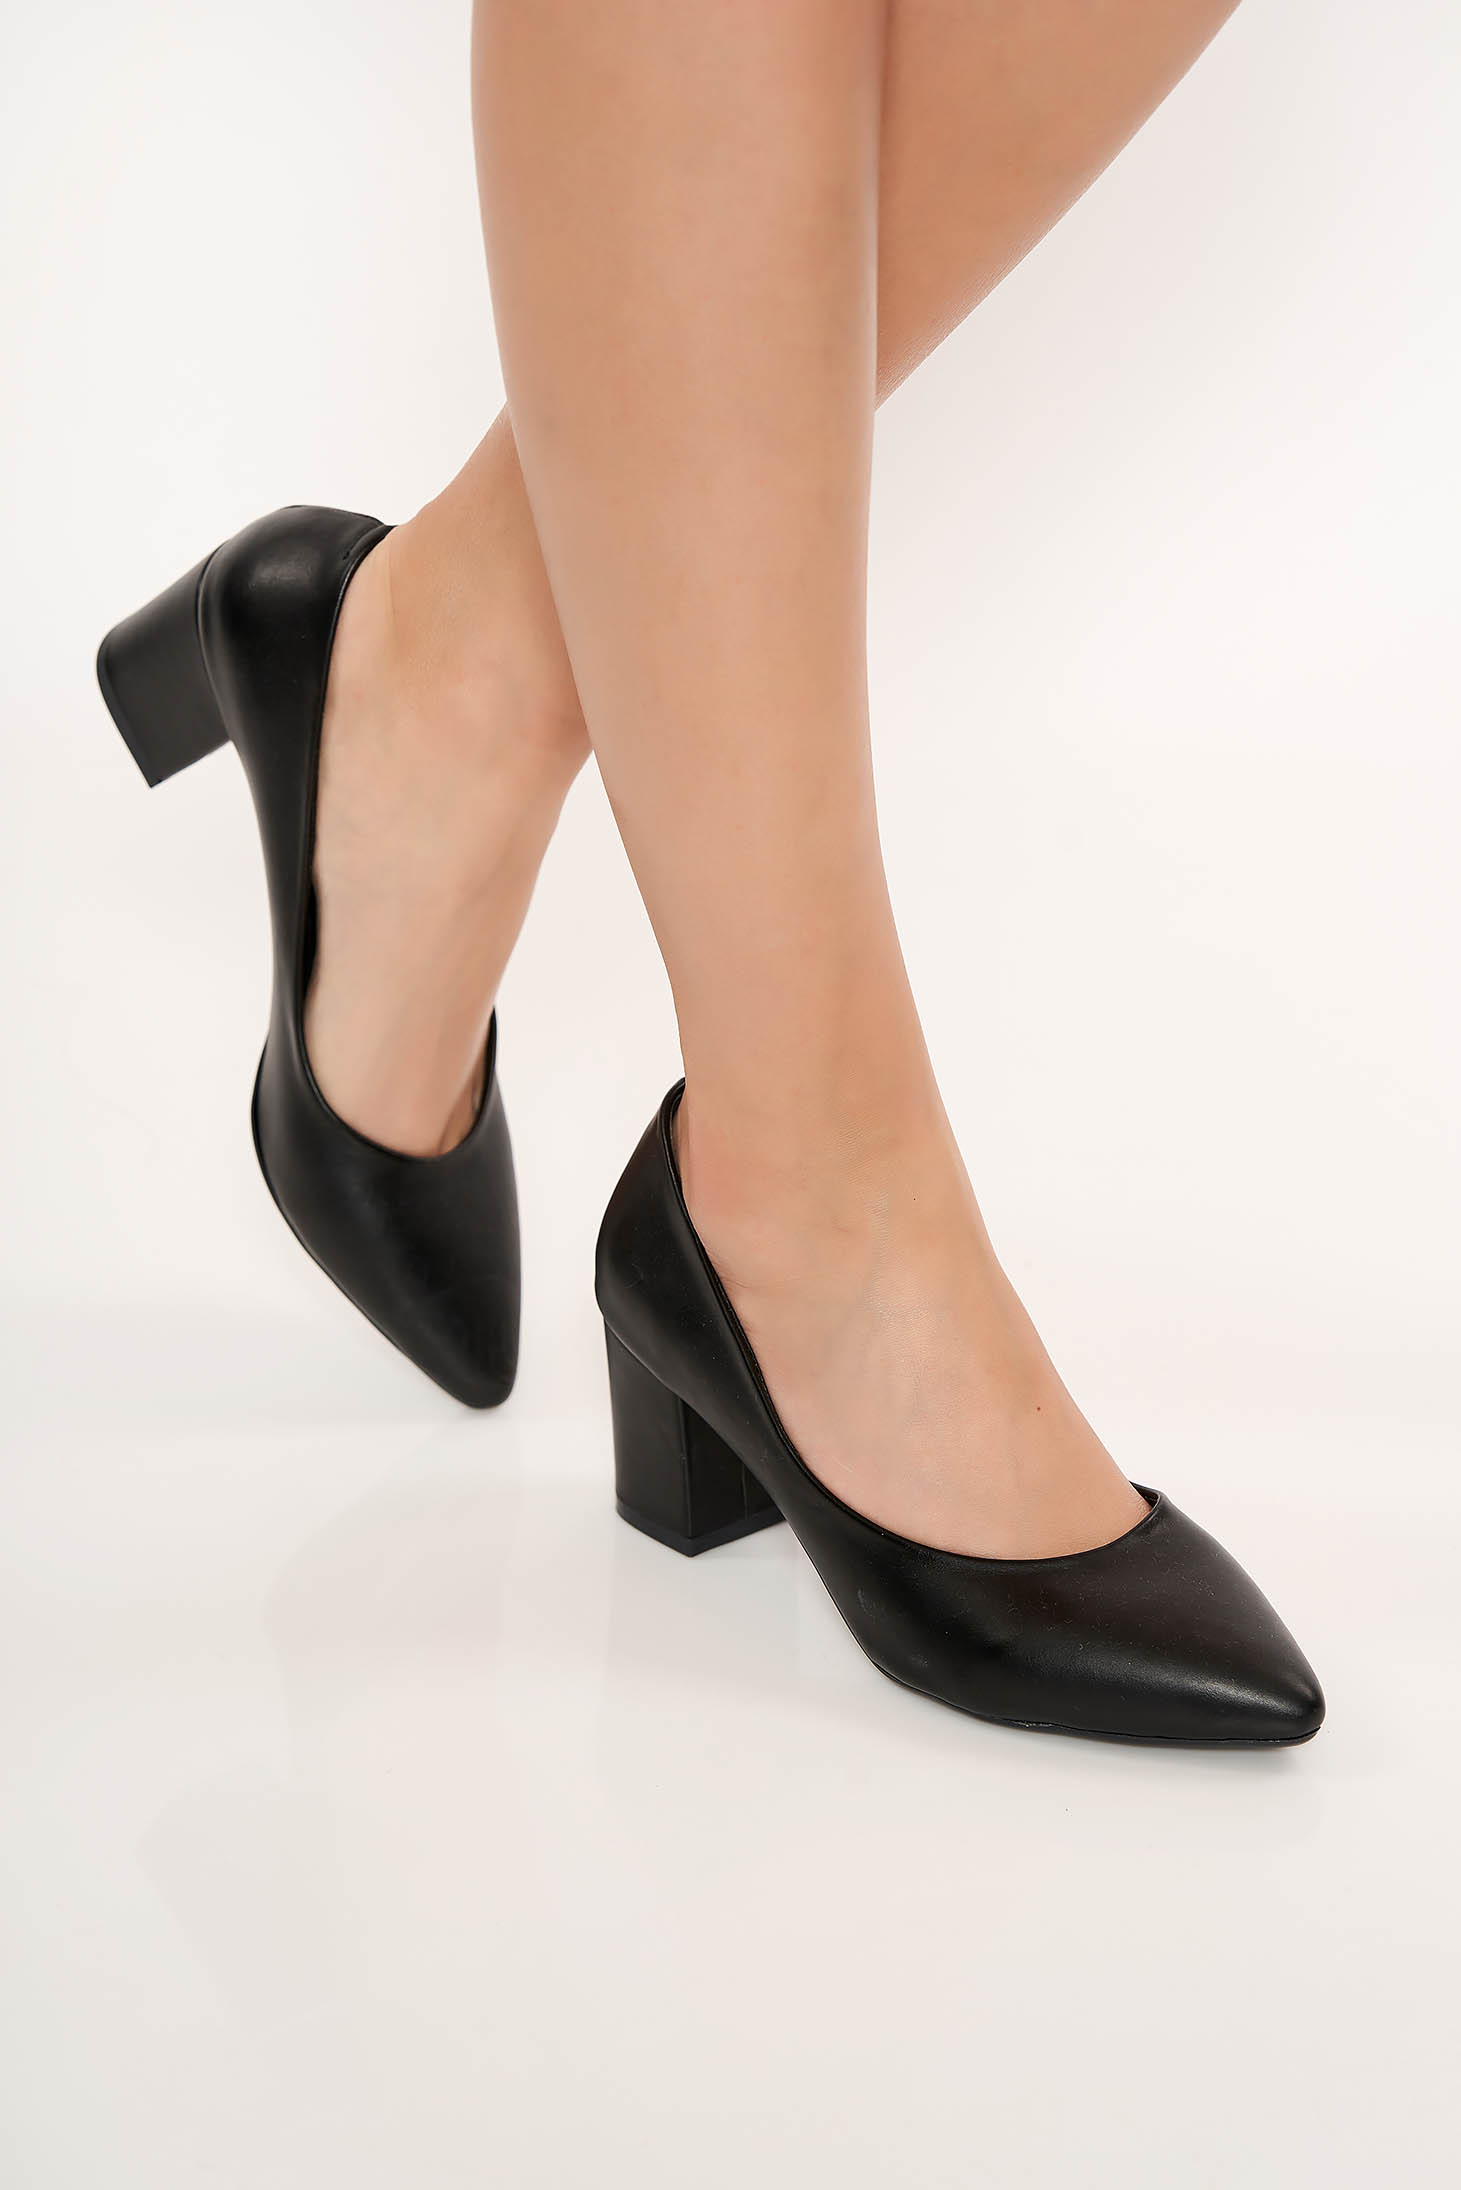 Black shoes chunky heel slightly pointed toe tip